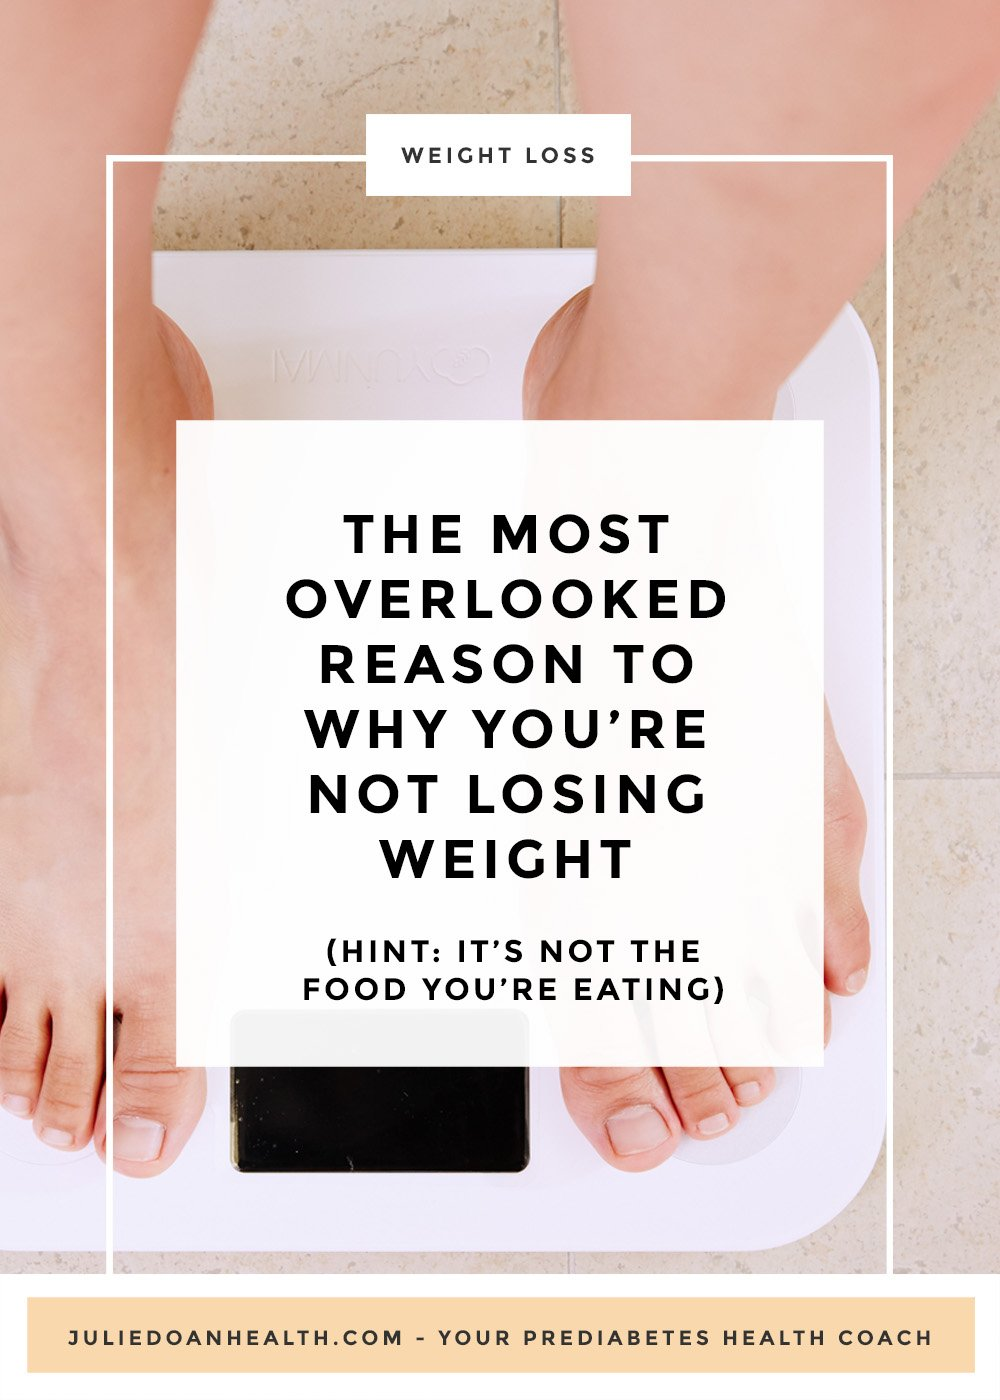 Do you have prediabetes and are looking to lose weight, but can't seem to get rid of the excess pounds? Discover the often overlooked reason to why you're not losing weight. Hint: it's not the food you're eating.